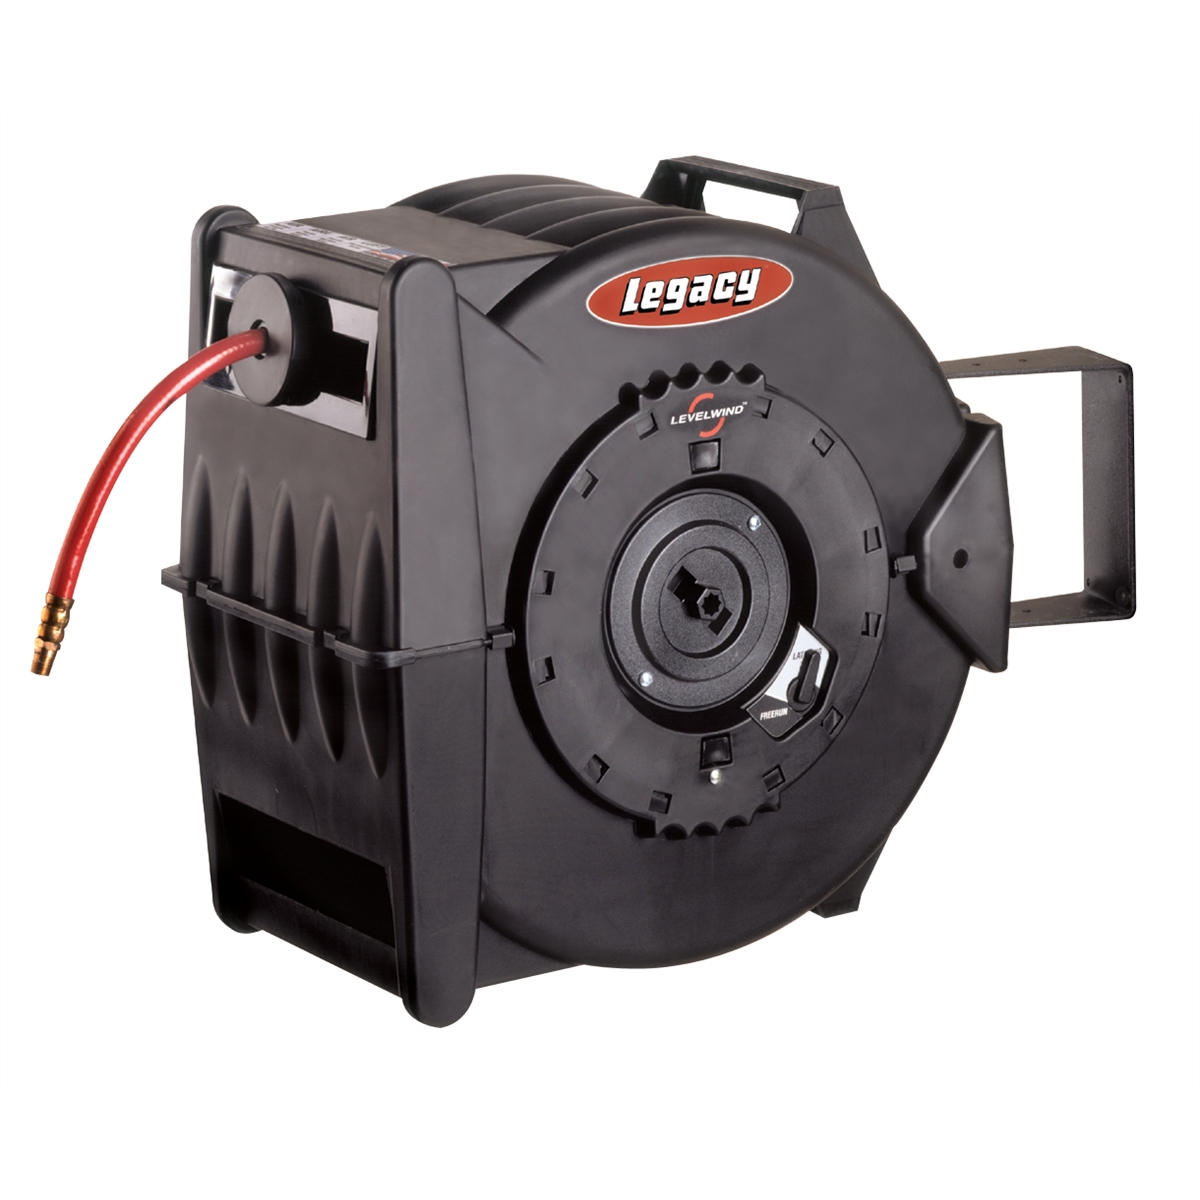 Air Hose Reel 3/8in. X 100 350Psi Retractable